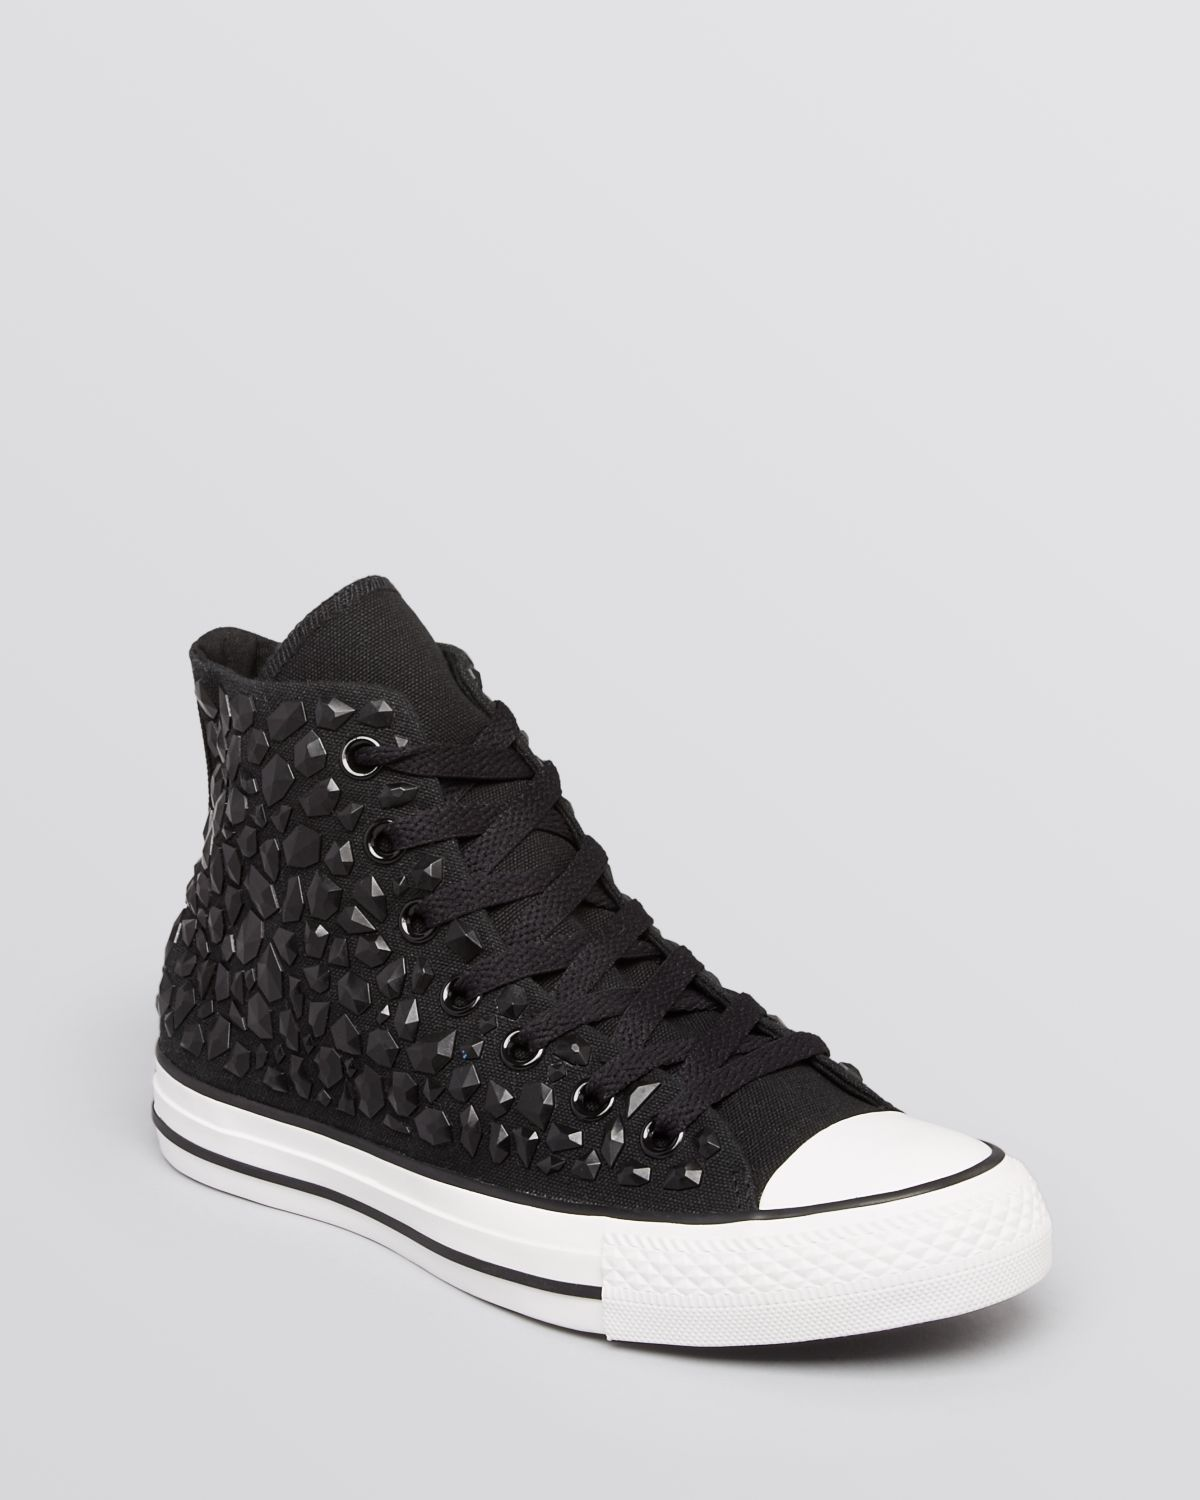 3f4c462308c6 Lyst - Converse Lace Up High Top Sneakers All Star Rhinestone in Black